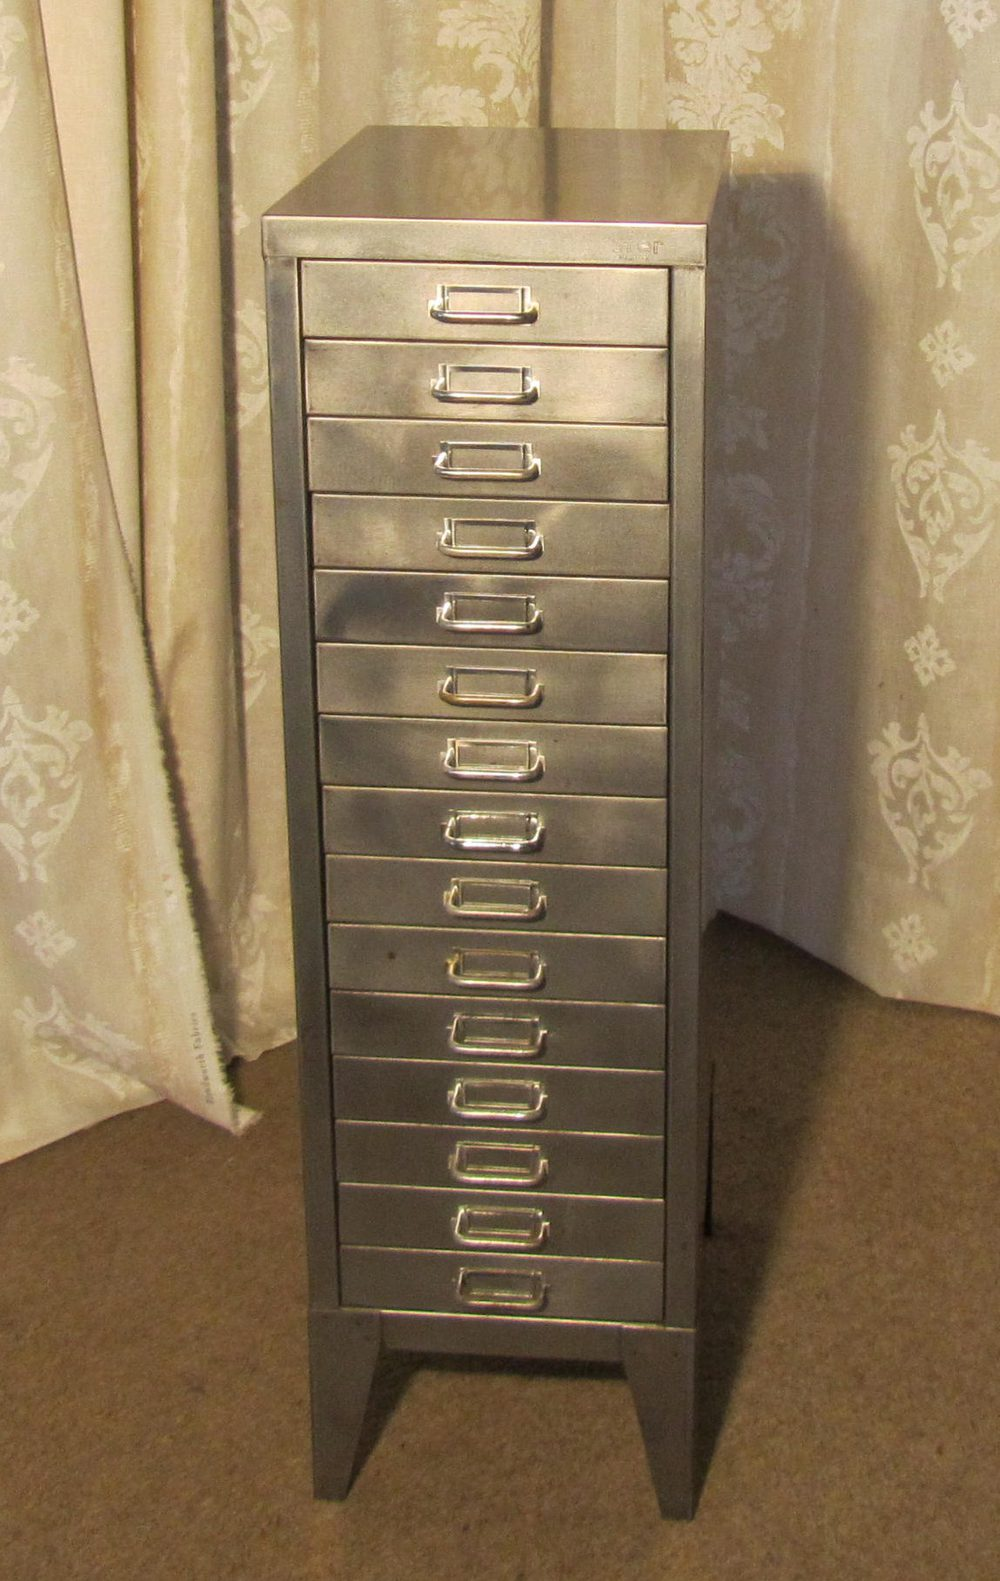 vintage 20 century steel 15 drawer filing cabinet - antiques atlas 4 door metal filing cabinet